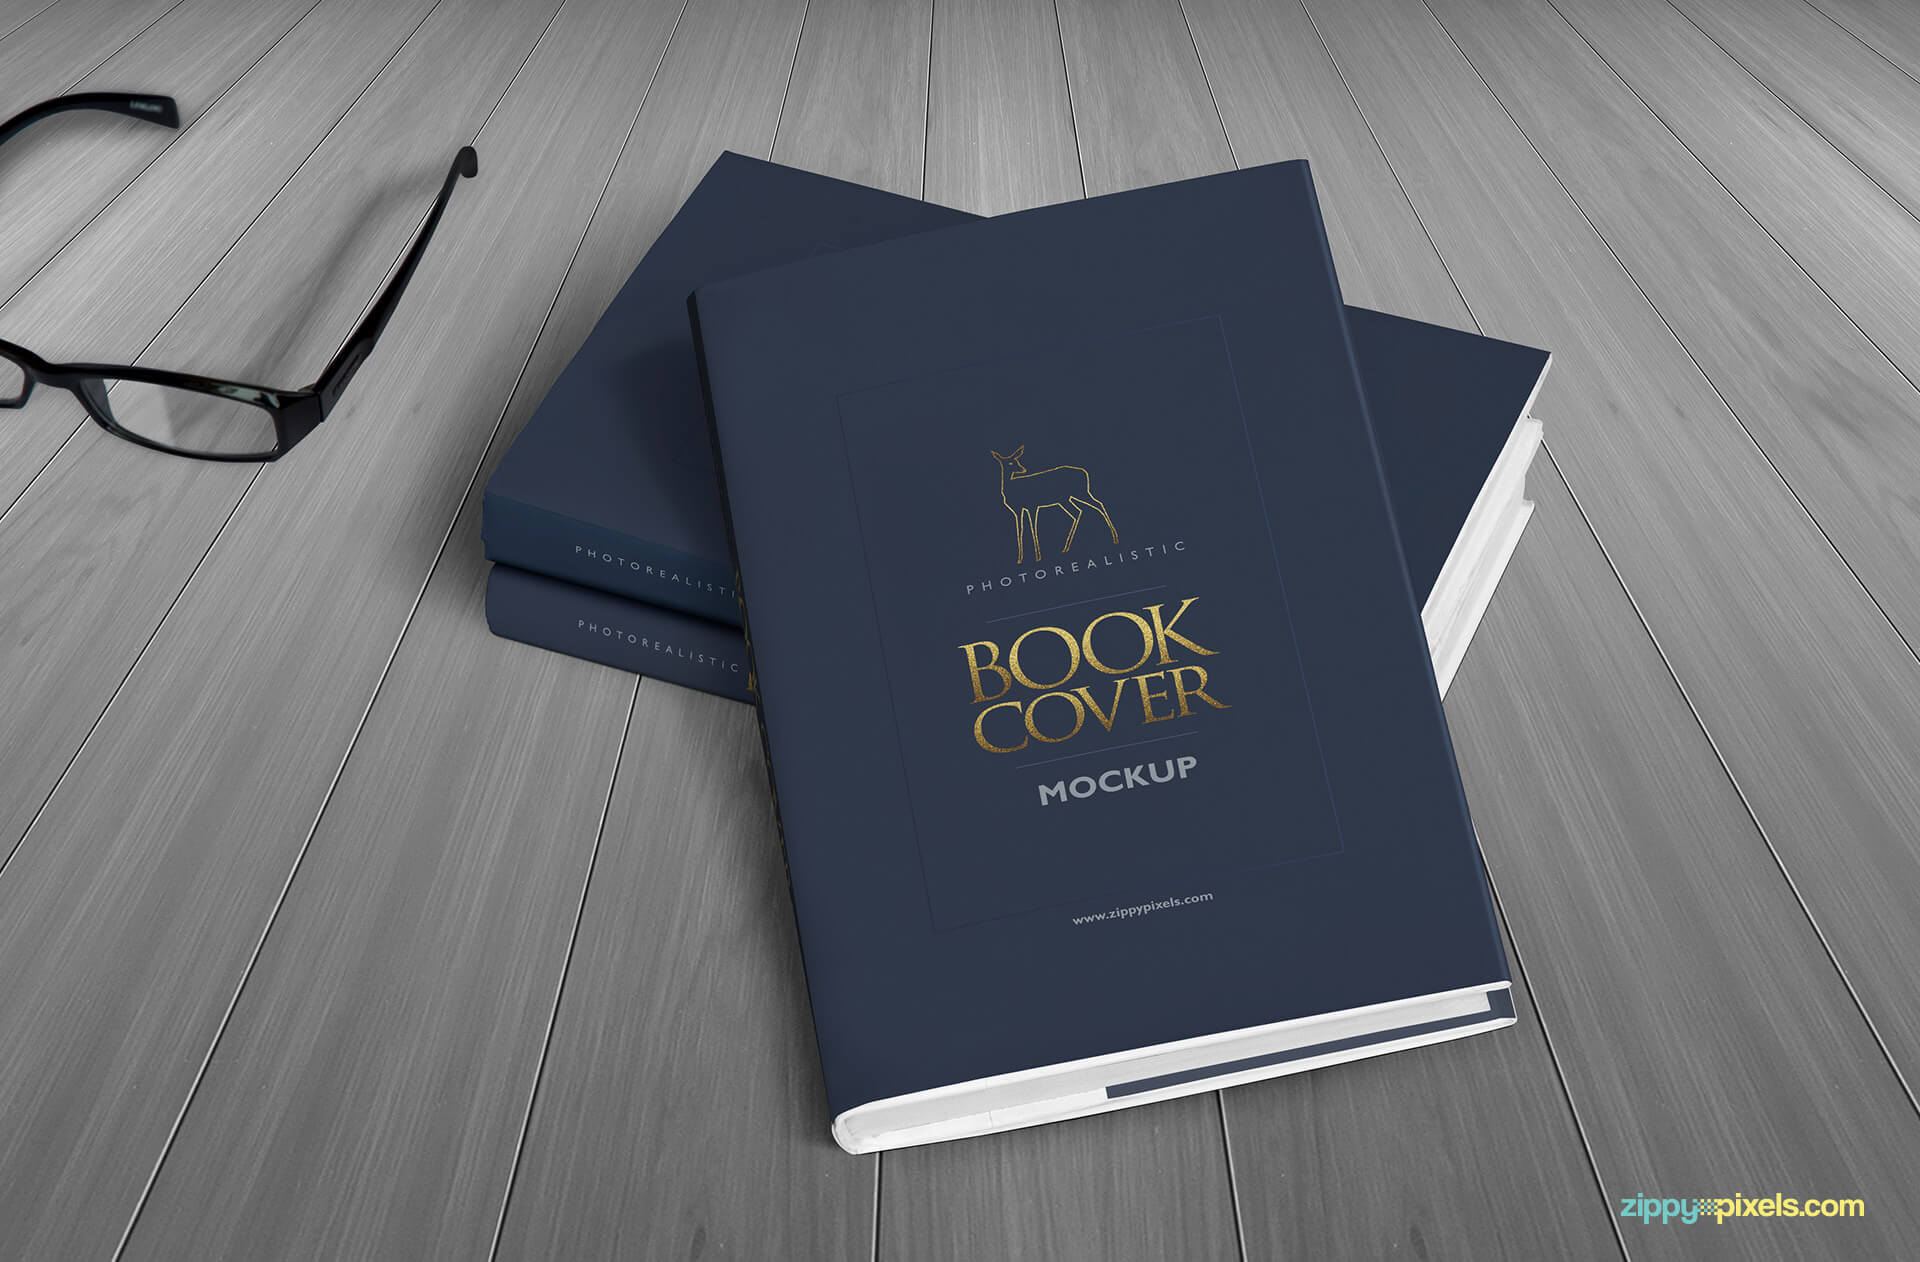 Hardcover book mockups - Two books lying on each other with a pair of glasses on side